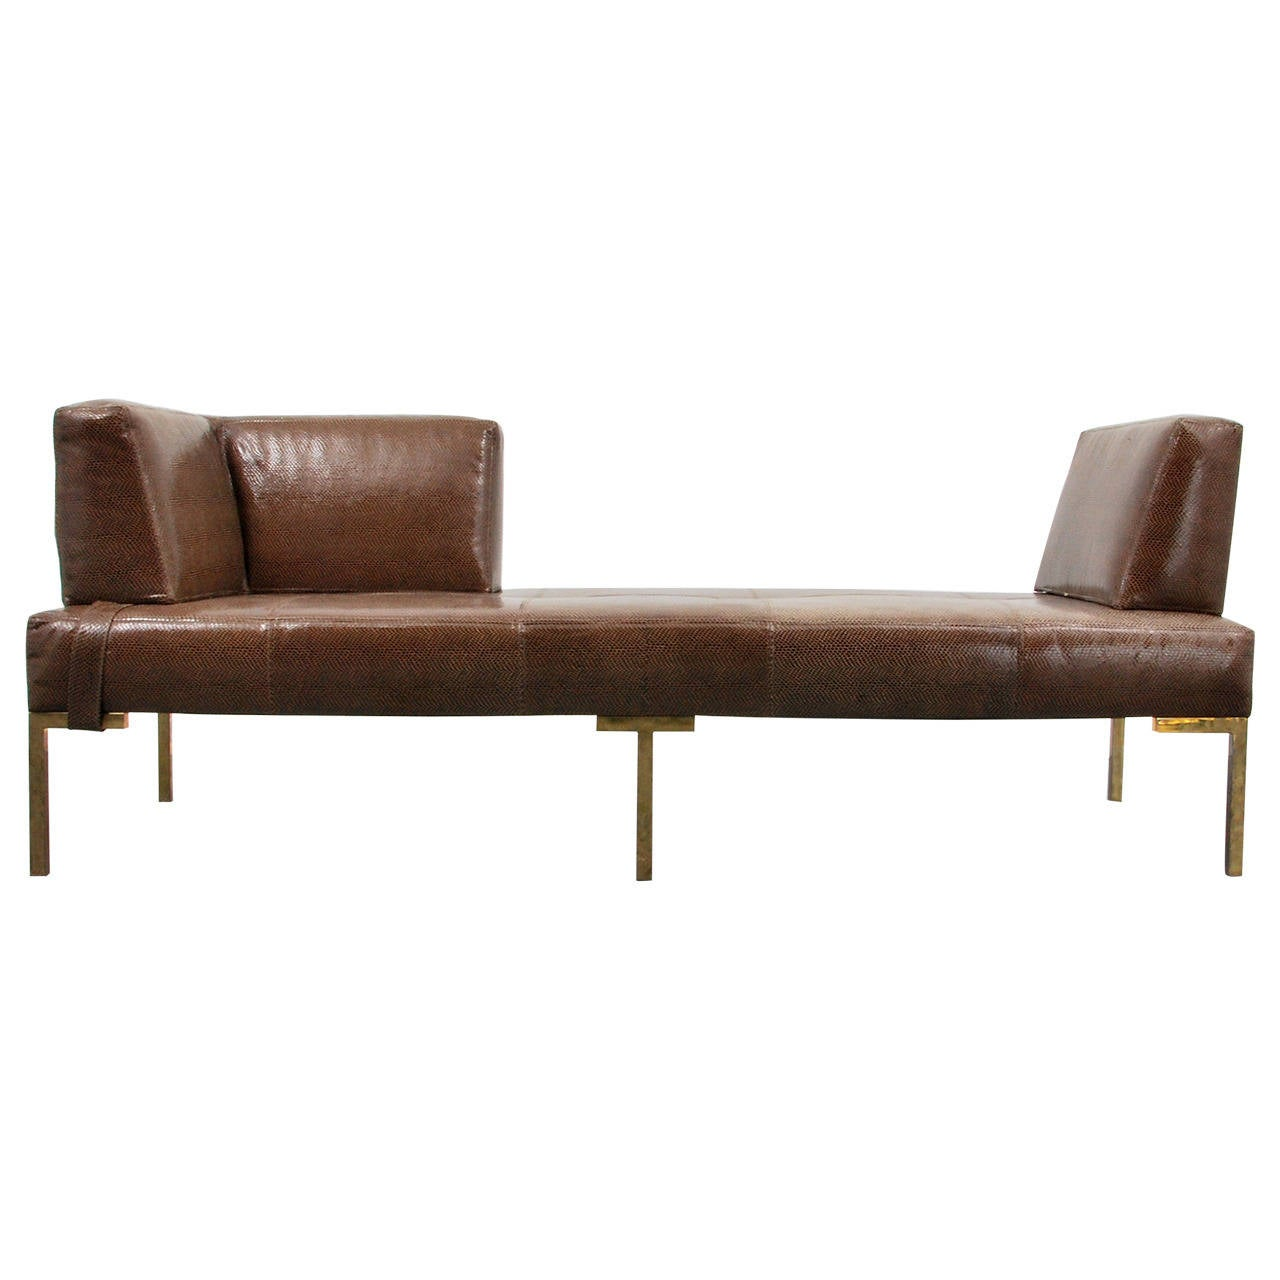 Luigi gentile leather daybeds or chaise lounges two for Chaise longue or chaise lounge